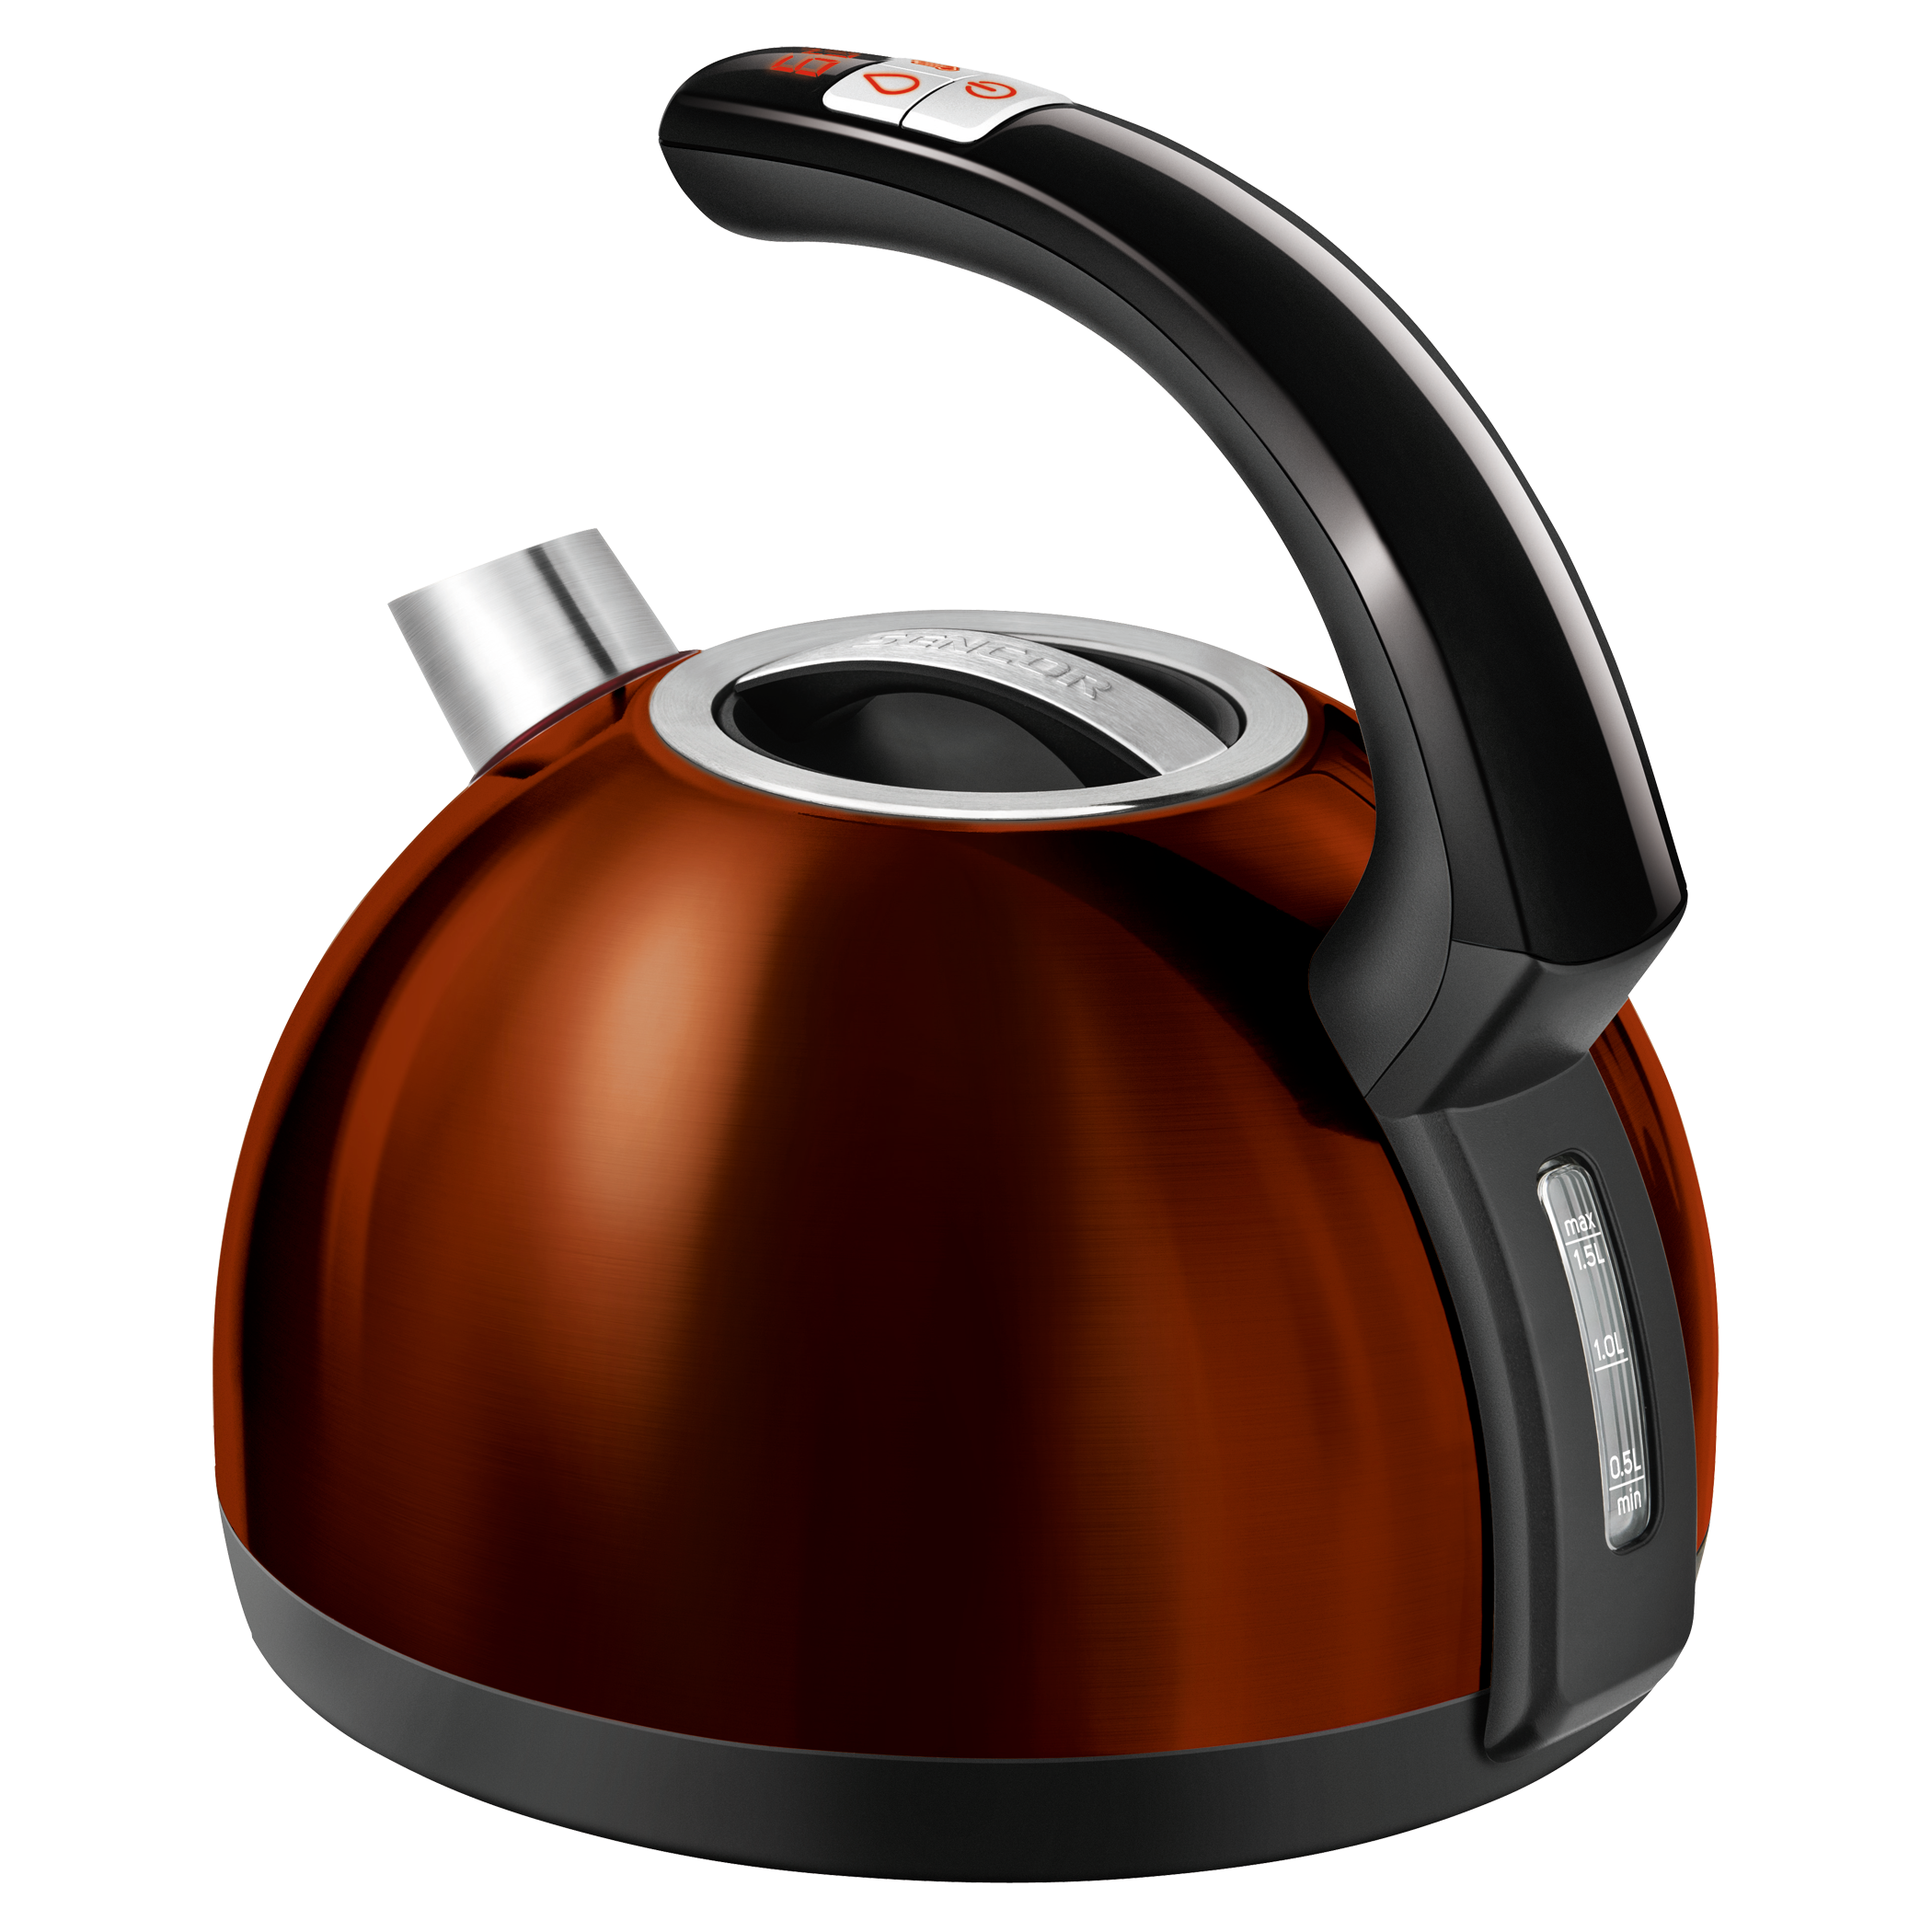 SWK 1573CO Electric Kettle